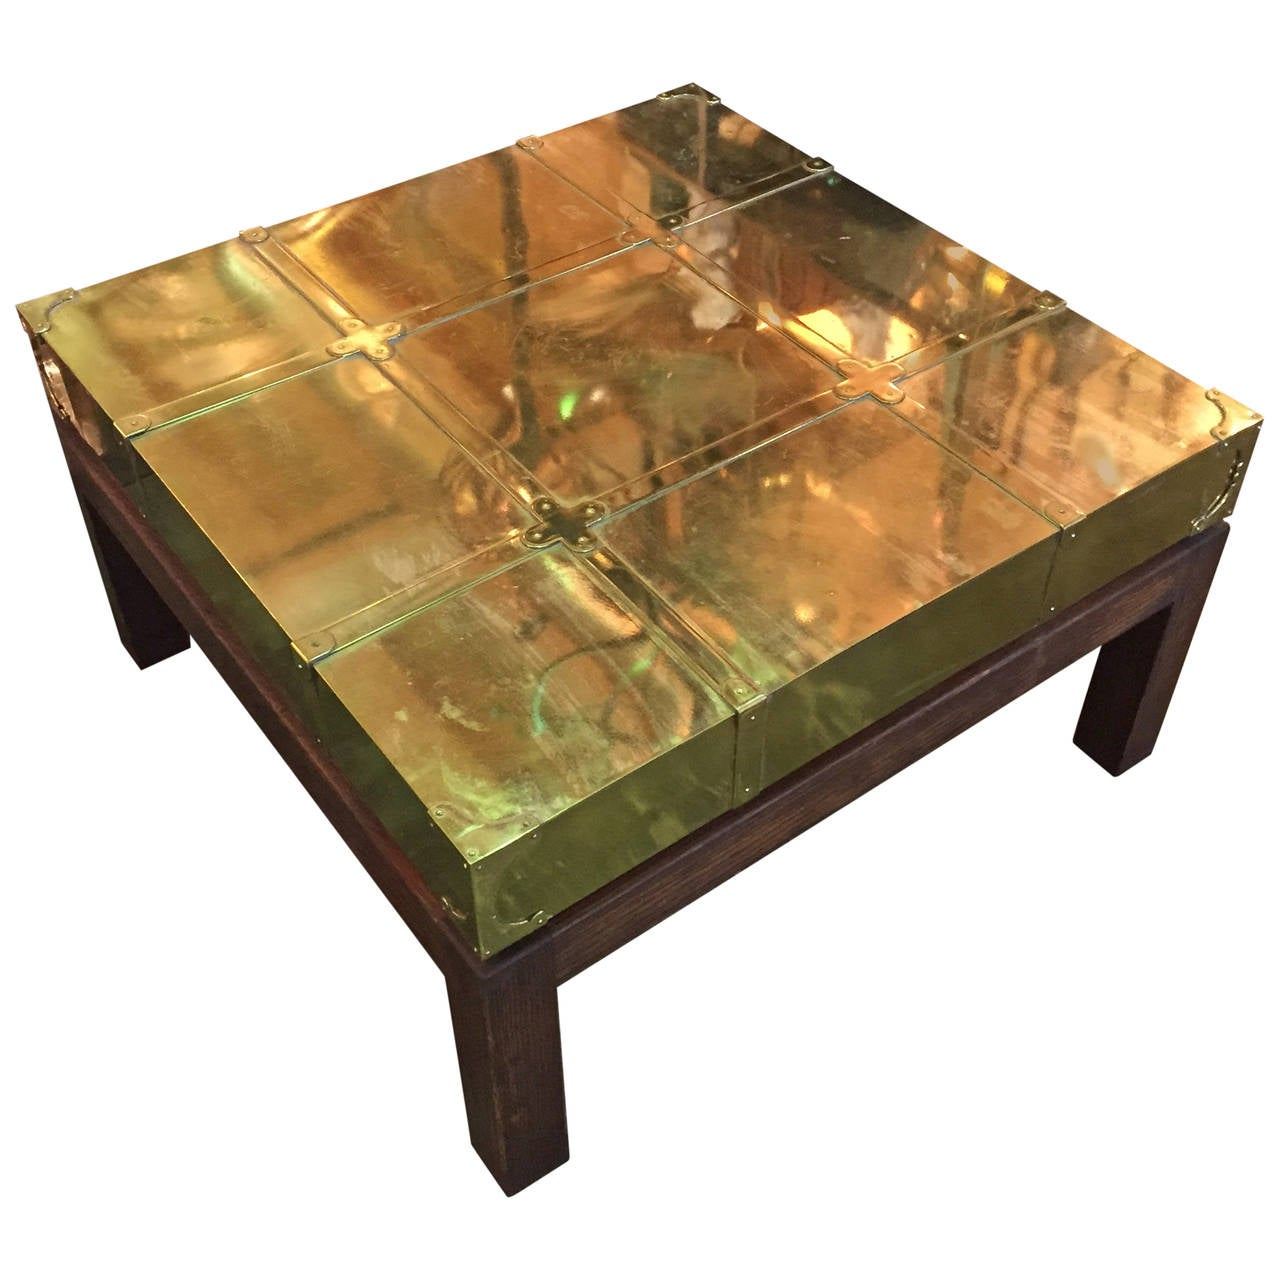 Brass Display Coffee Table: Brass Coffee Table By Sarreid Ltd. Of Spain At 1stdibs